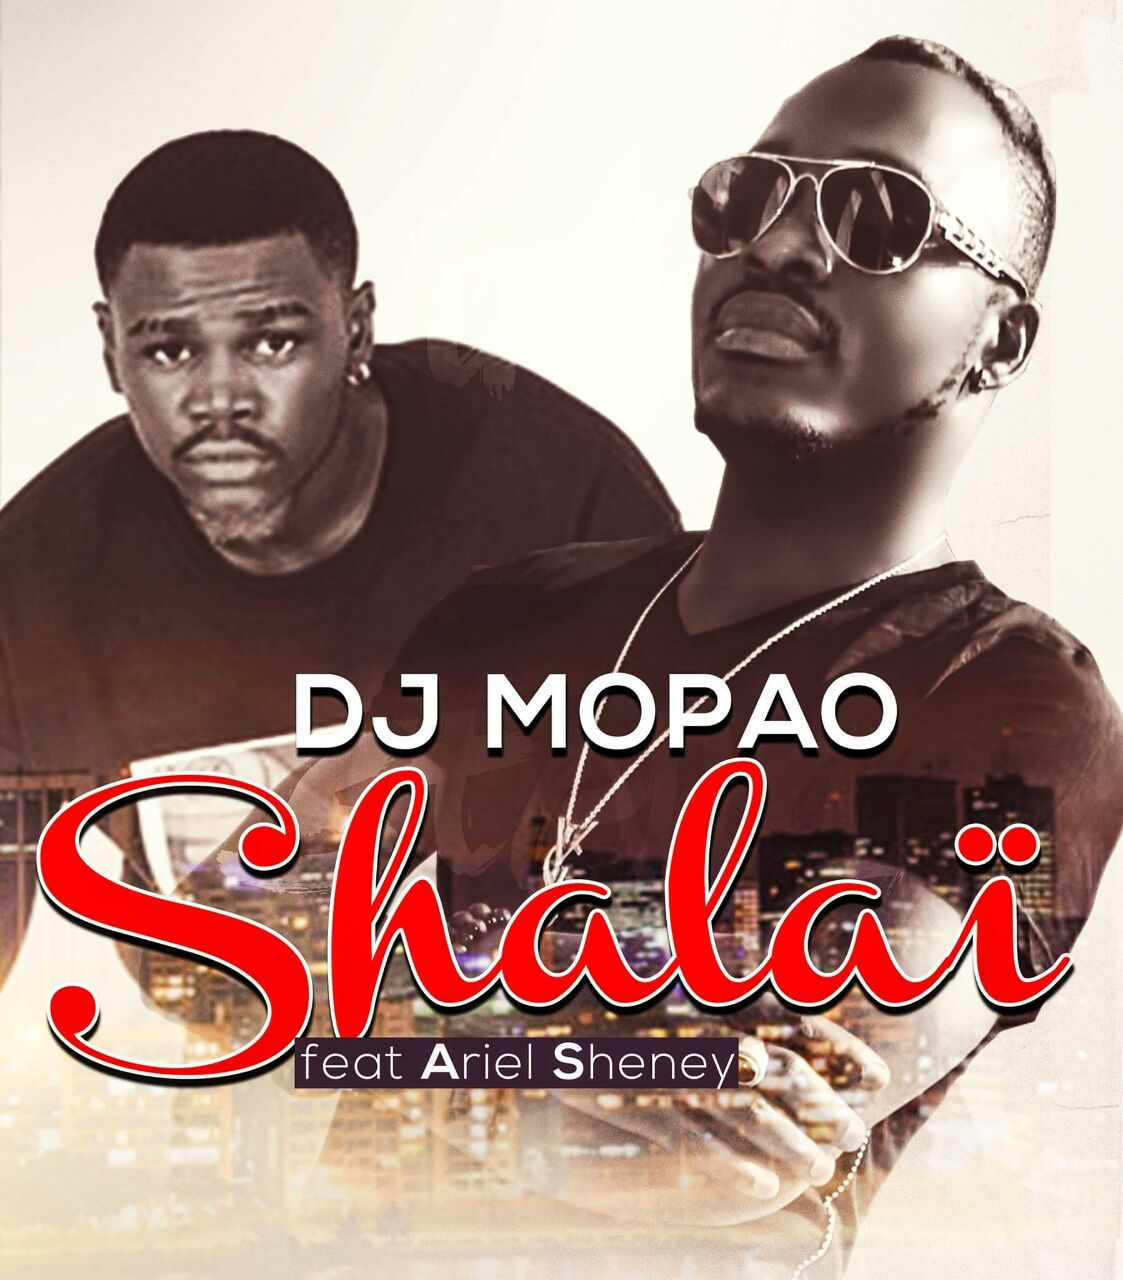 Dj Mopao feat Ariel Sheney Nouveau single